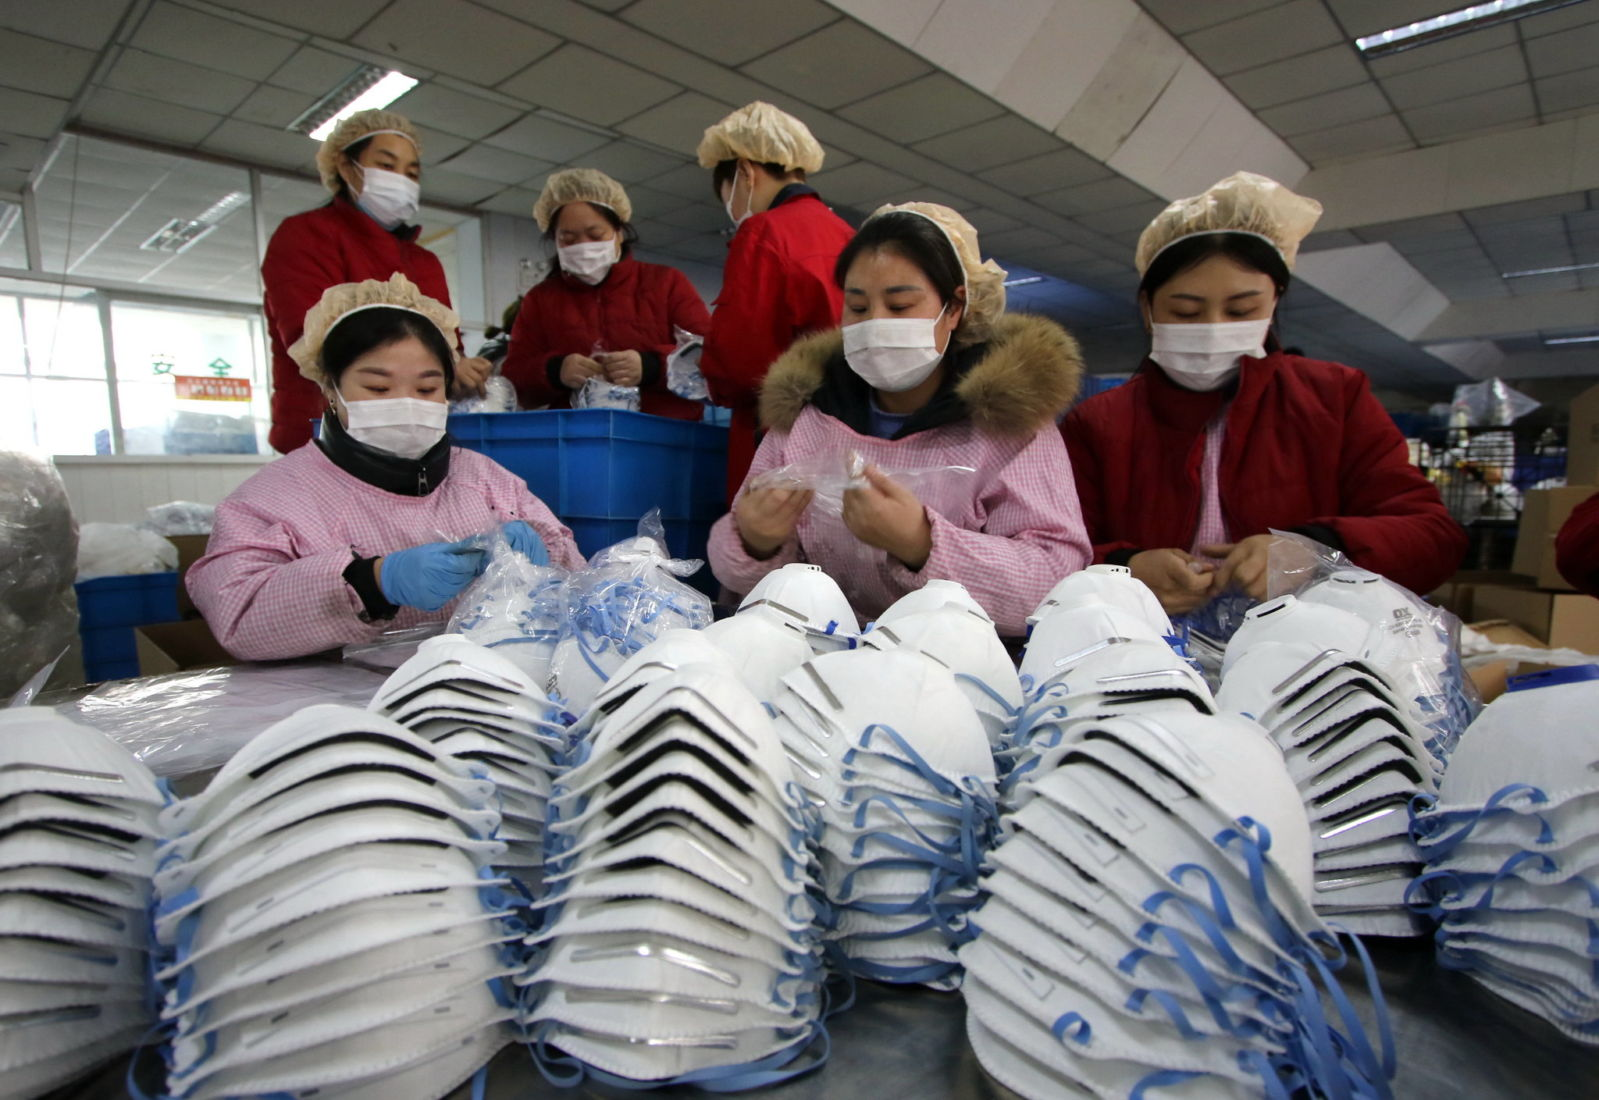 Coronavirus UPDATE: No cases in Indonesia, why? Are paper face-masks effective? | Thaiger